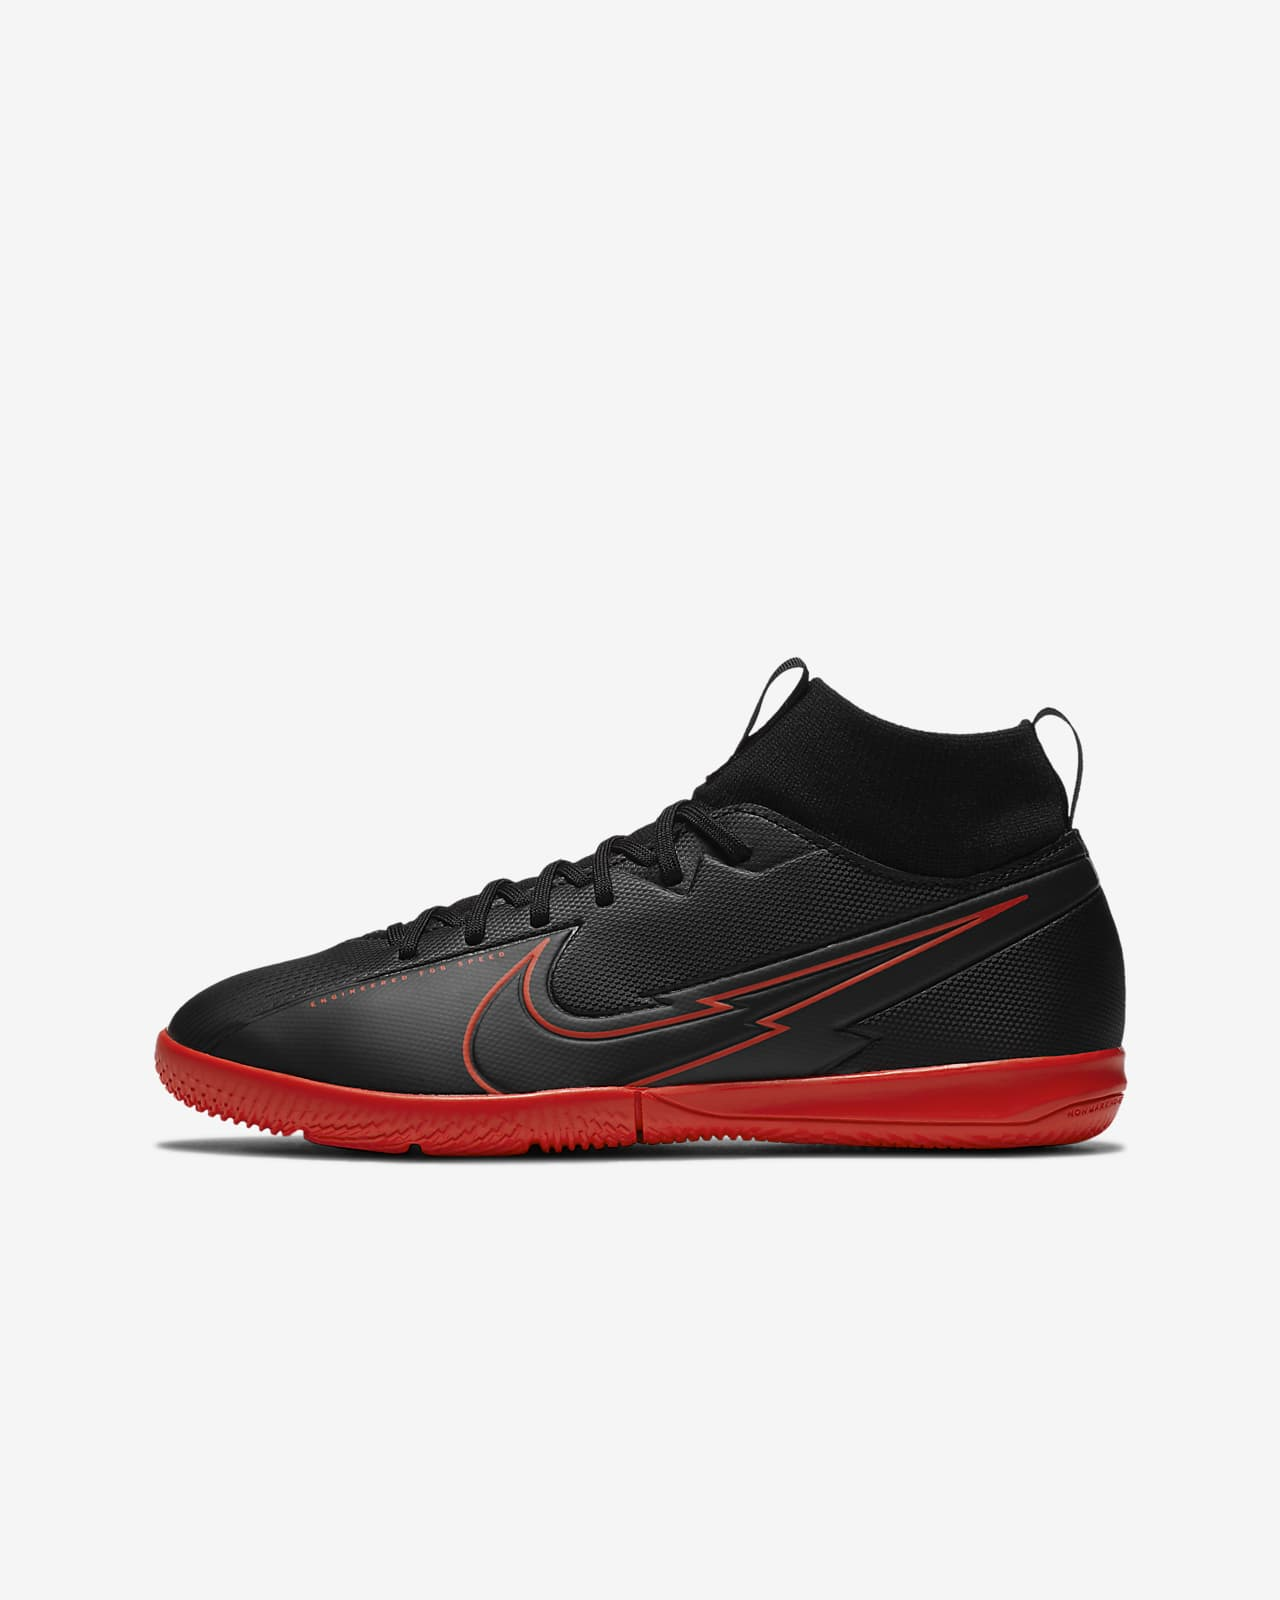 DoneXcaseo CR Indoor Soccer Shoes for Boys Soccer Shoes High Tops Turf Outd.